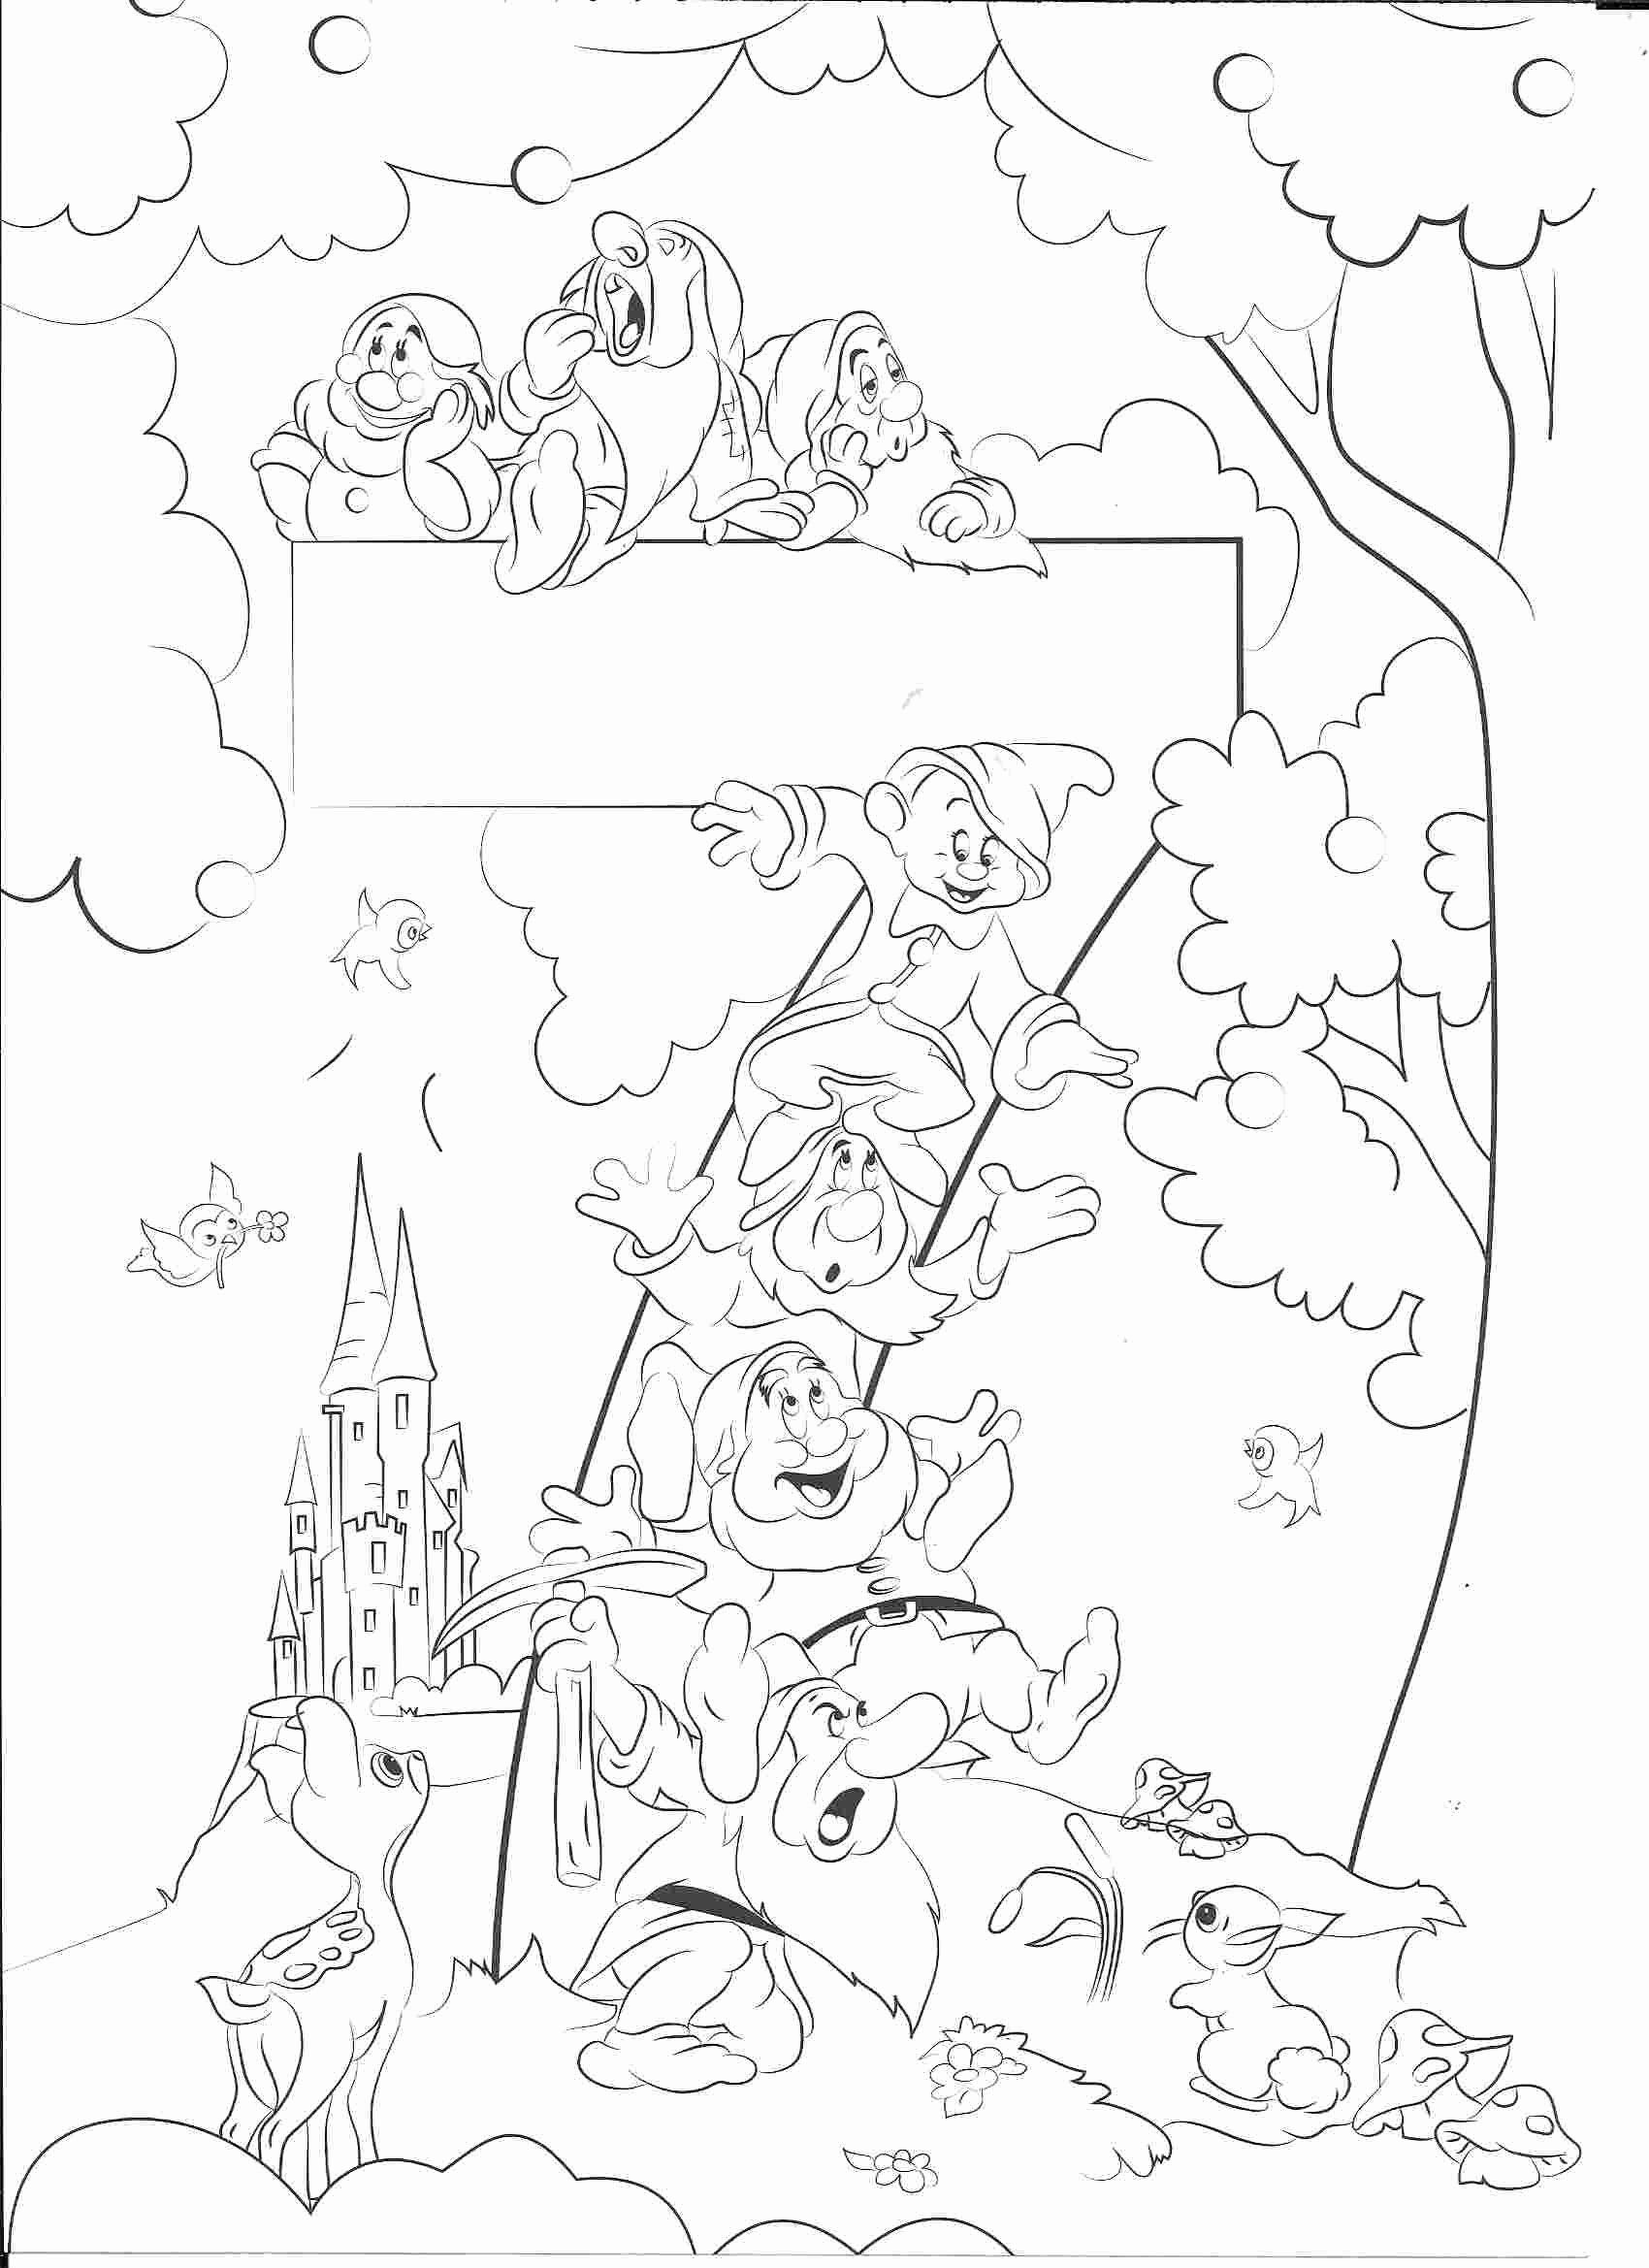 Print Free Coloring Pages Disney Beautiful Disney Abc Coloring Pages Coloring Page Coloring Pag Abc Coloring Pages Disney Coloring Sheets Disney Coloring Pages